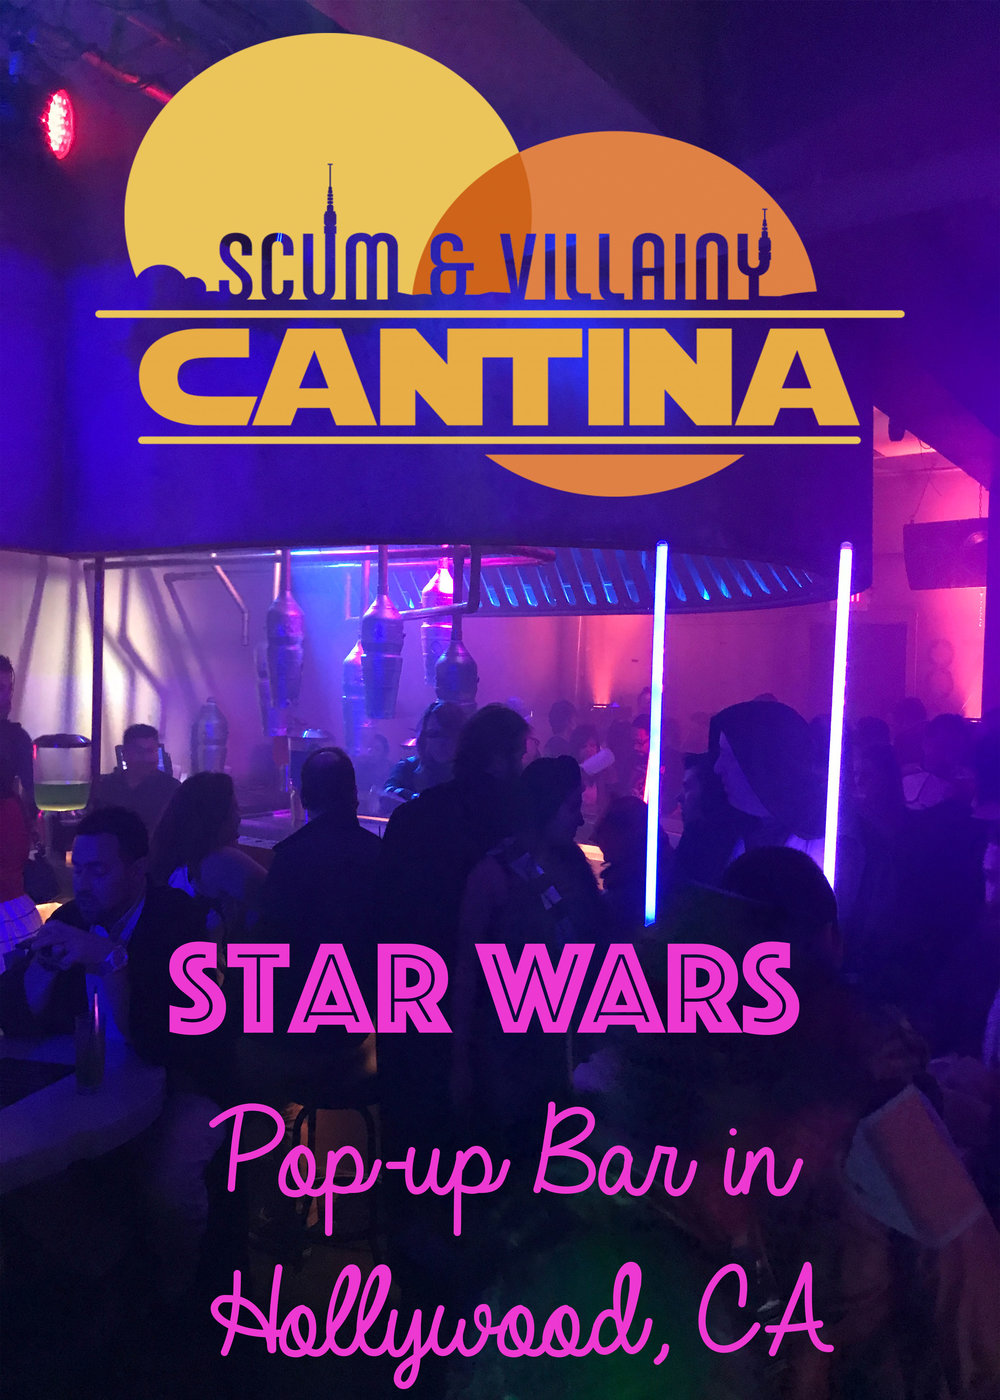 Scum & Villainy Cantina - Star Wars Bar in Hollywood, CA Wandering Jokas Travel Blog